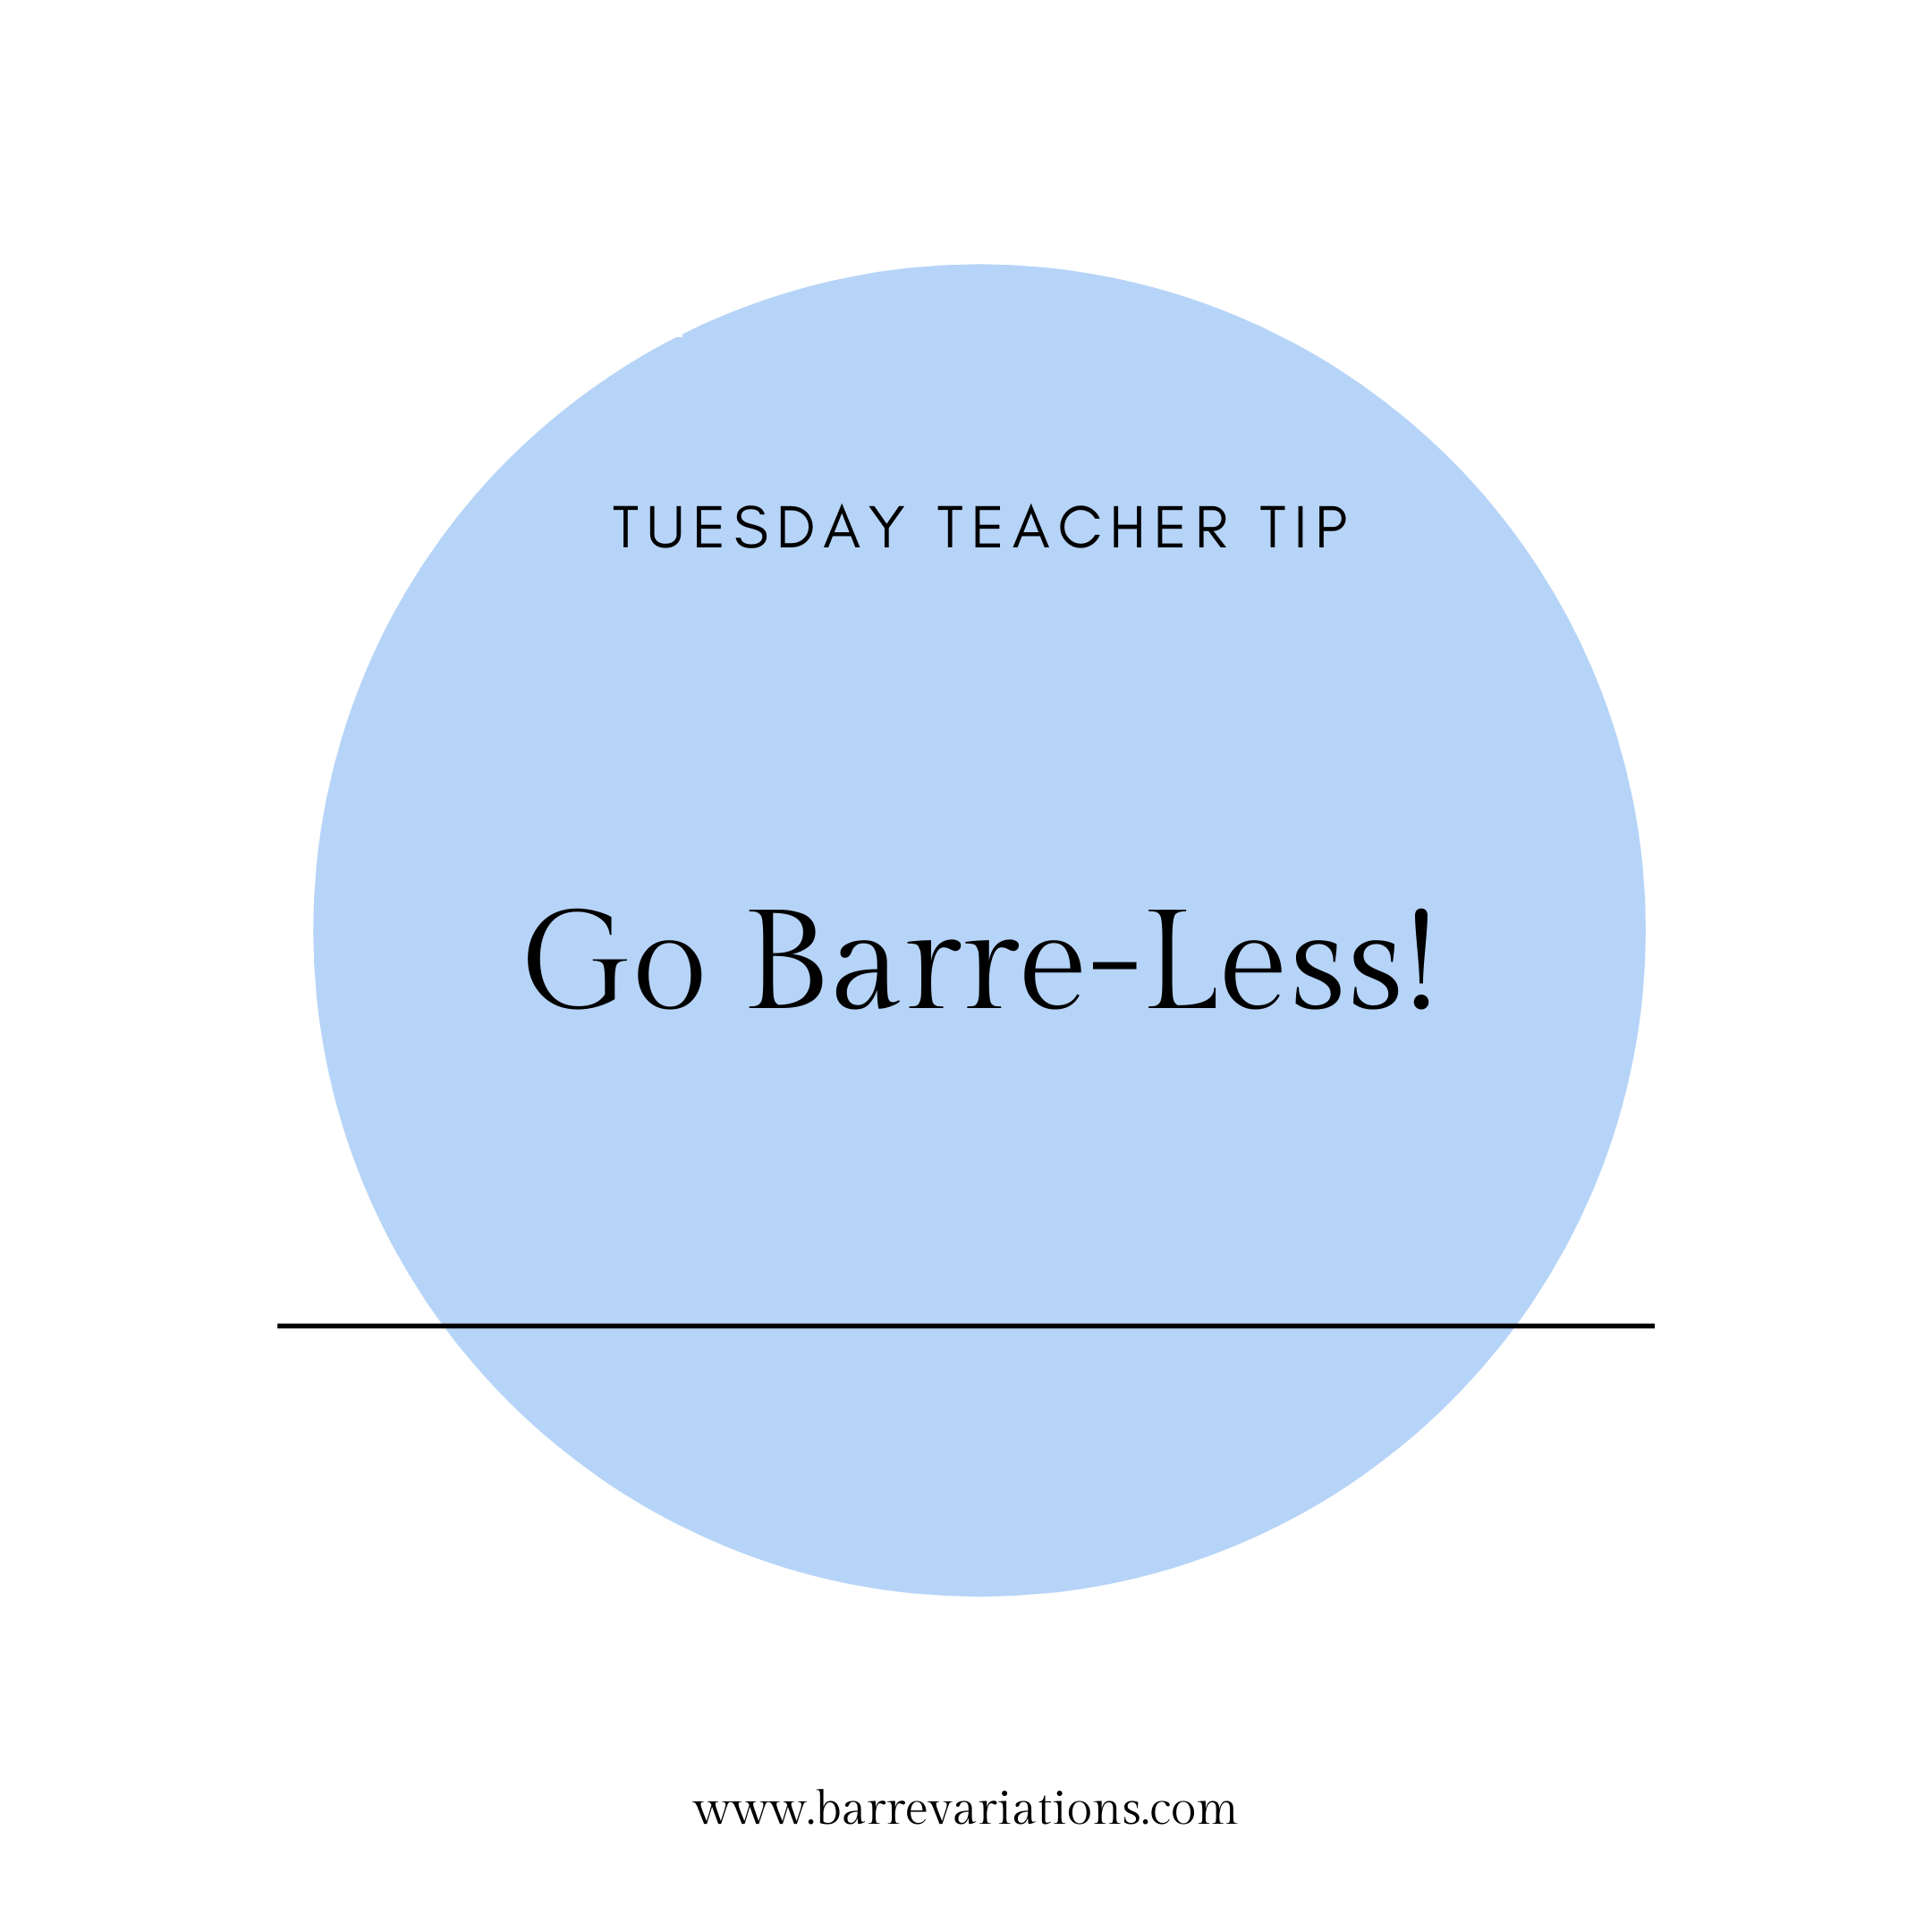 Image that says Go barre-less!